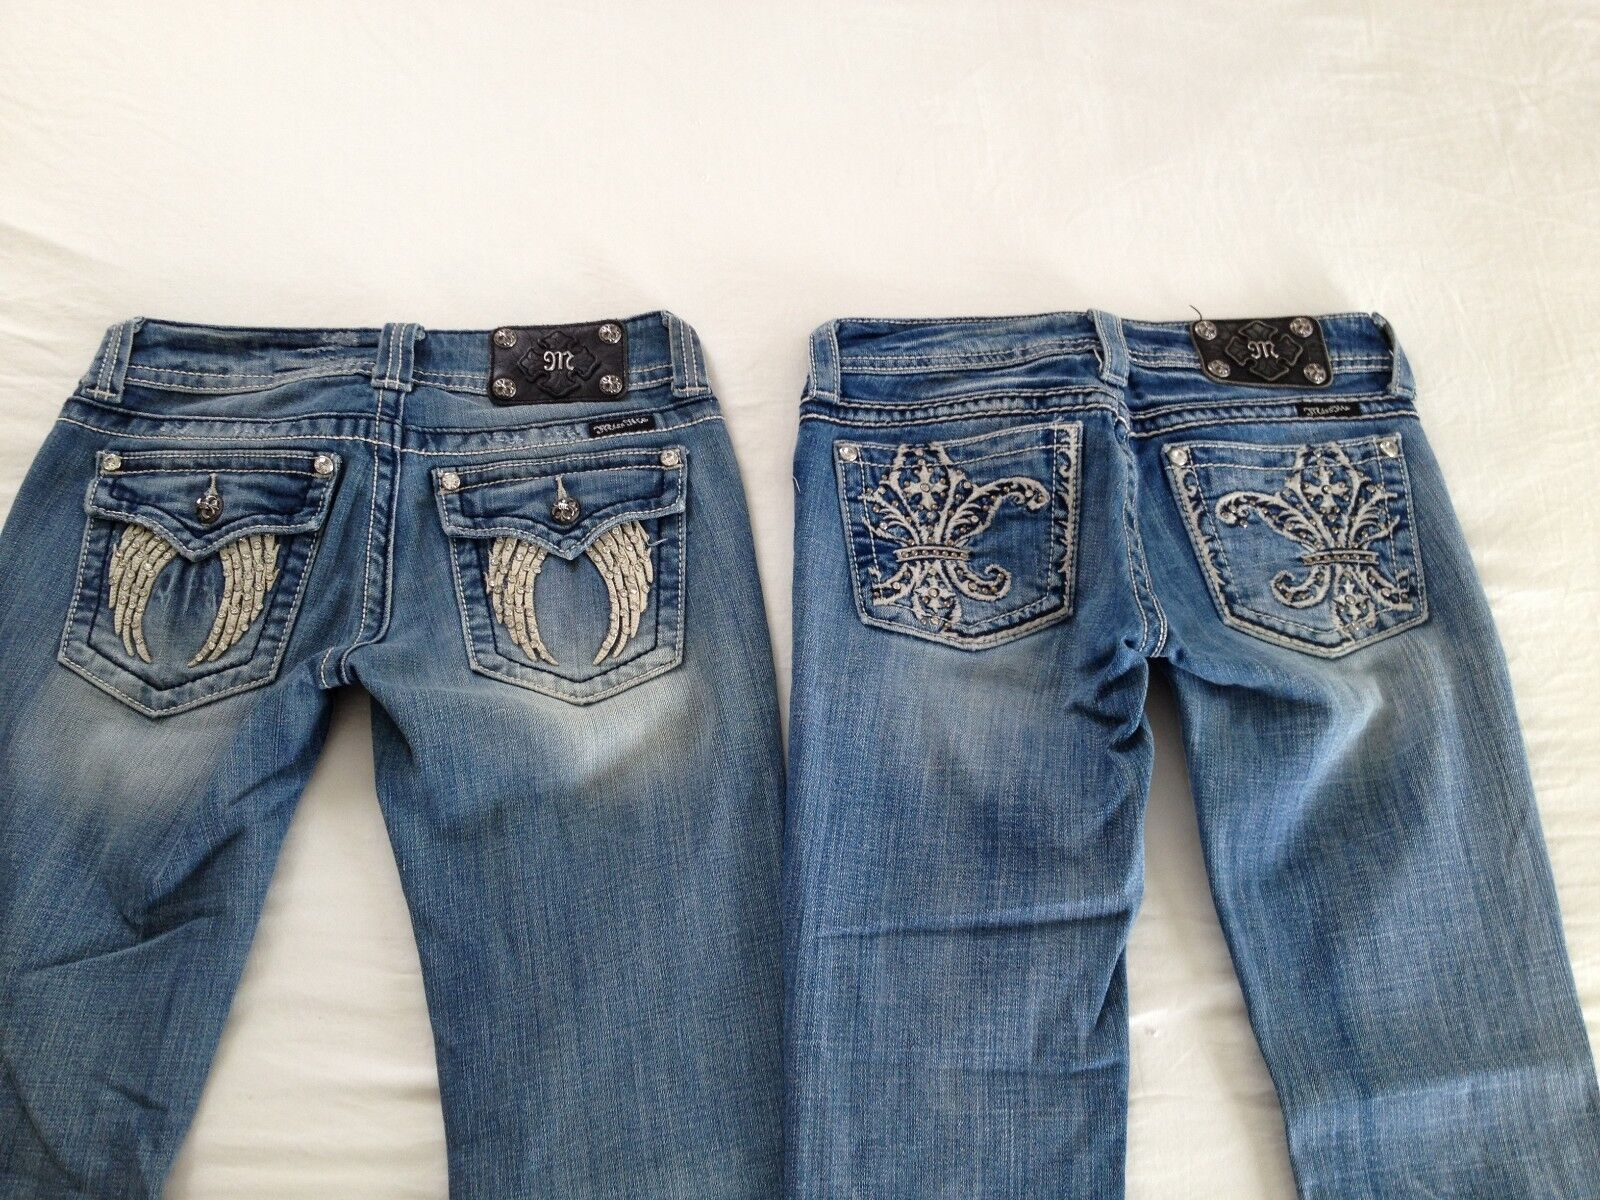 Miss Me Women's Cropped & Boot Cut Studded Distressed Jeans Size 26 L30 2 Pair